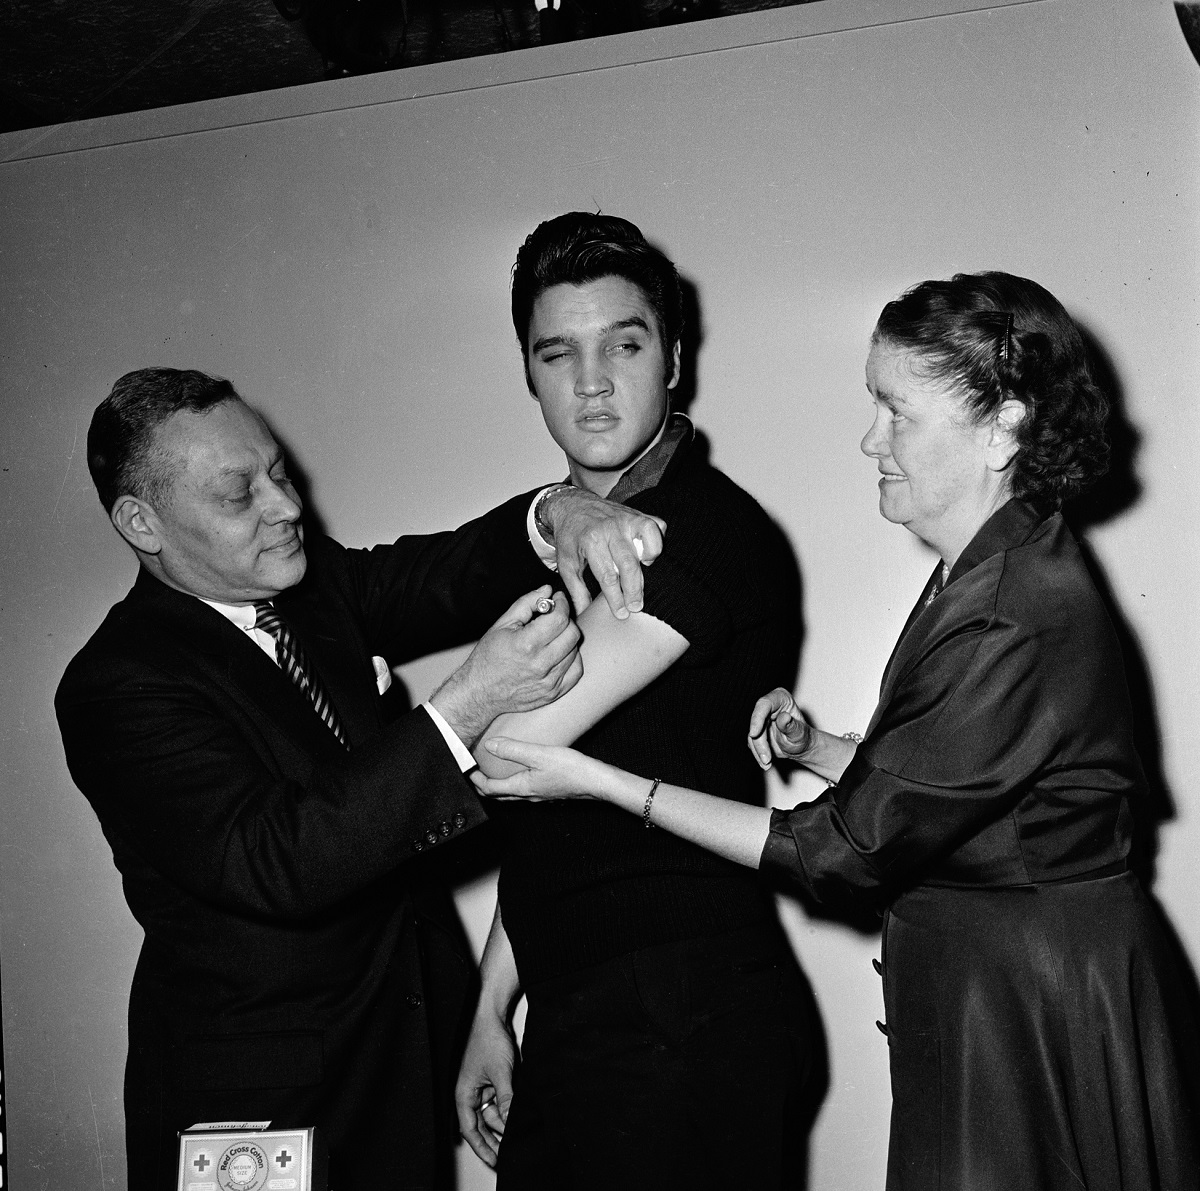 Elvis Presley getting vaccinated